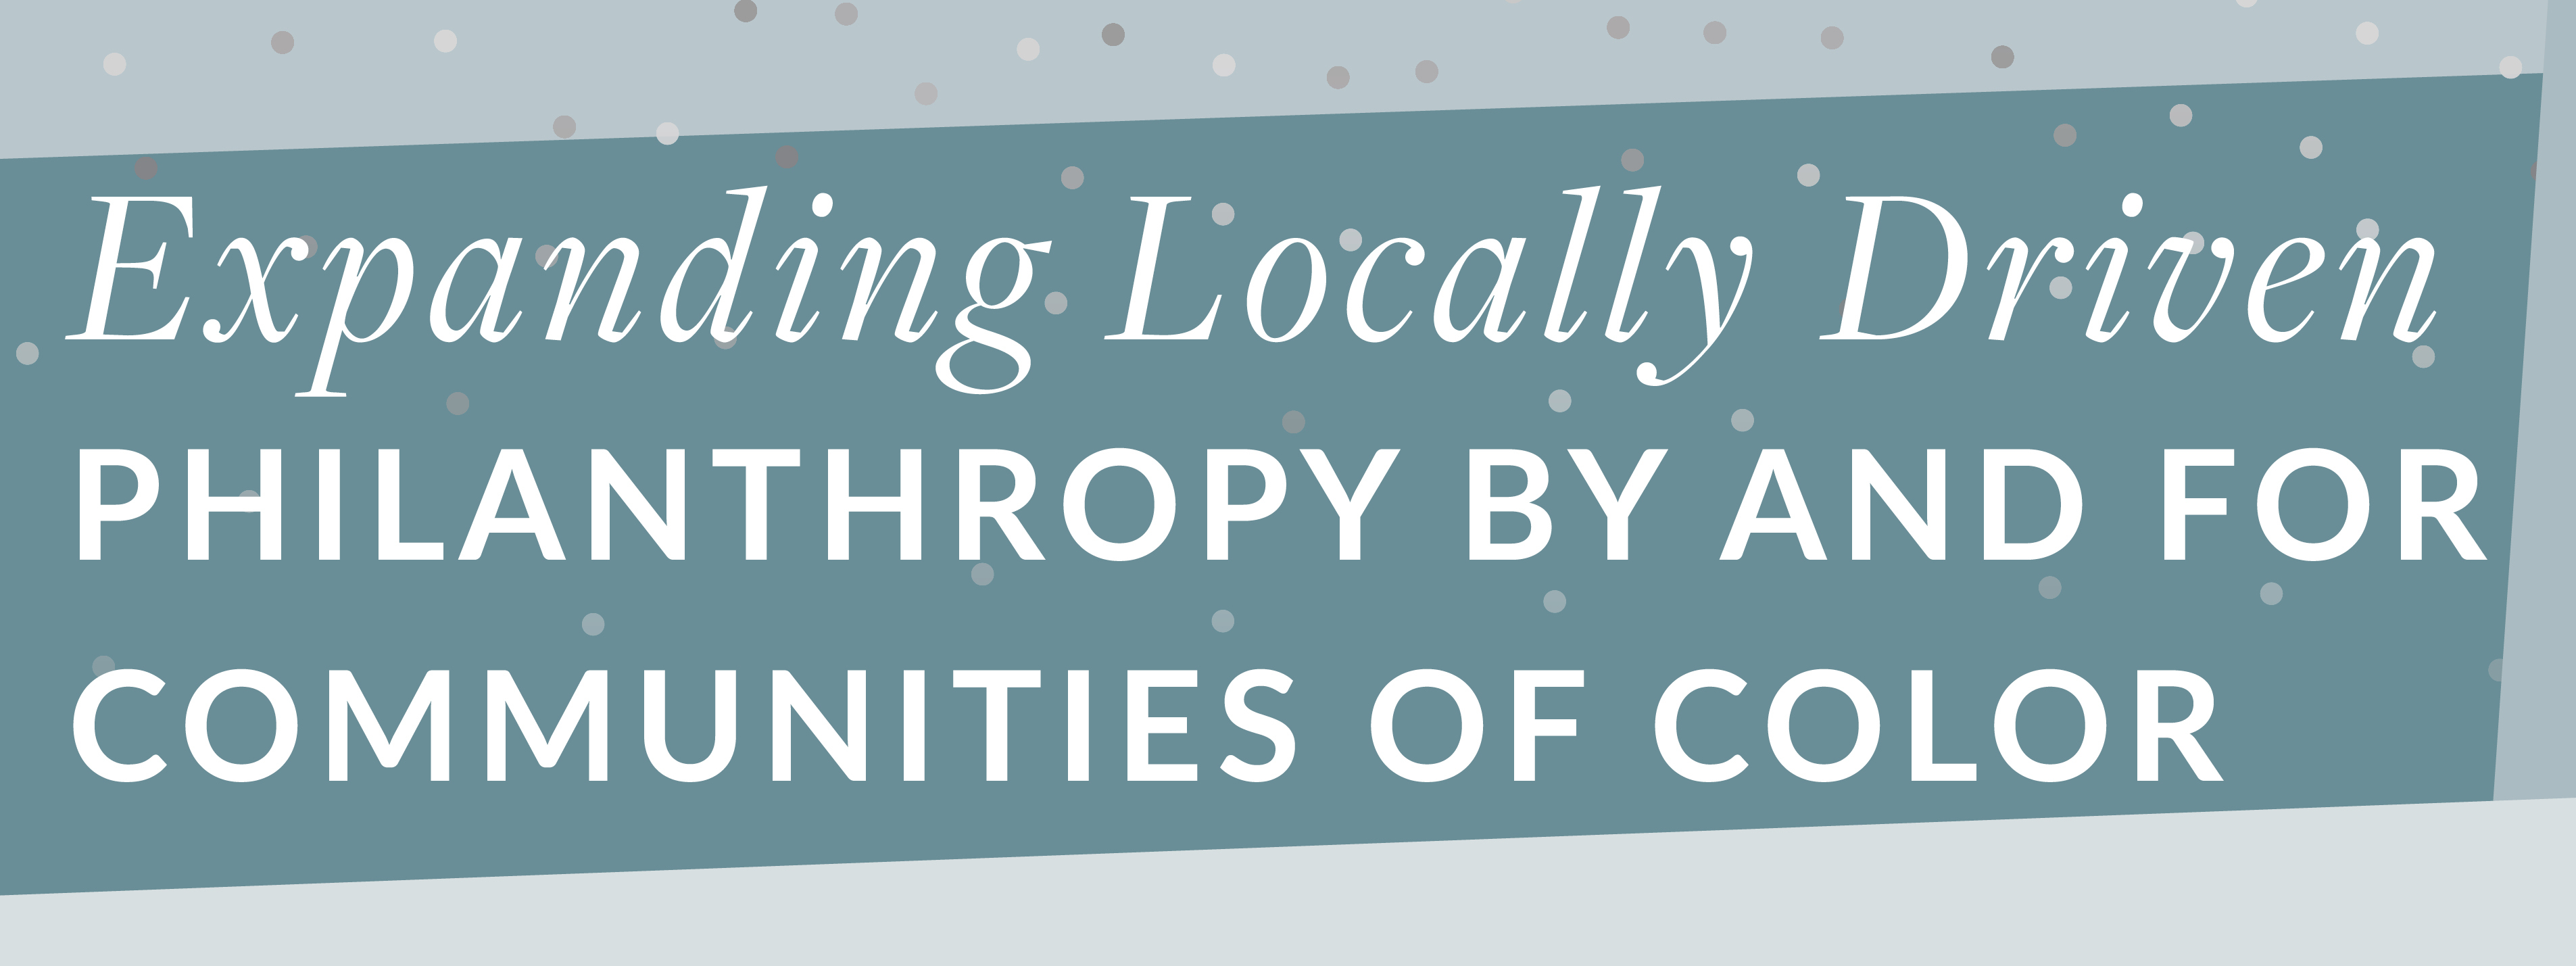 Expanding Locally Driven Philanthropy by and for Communities of Color